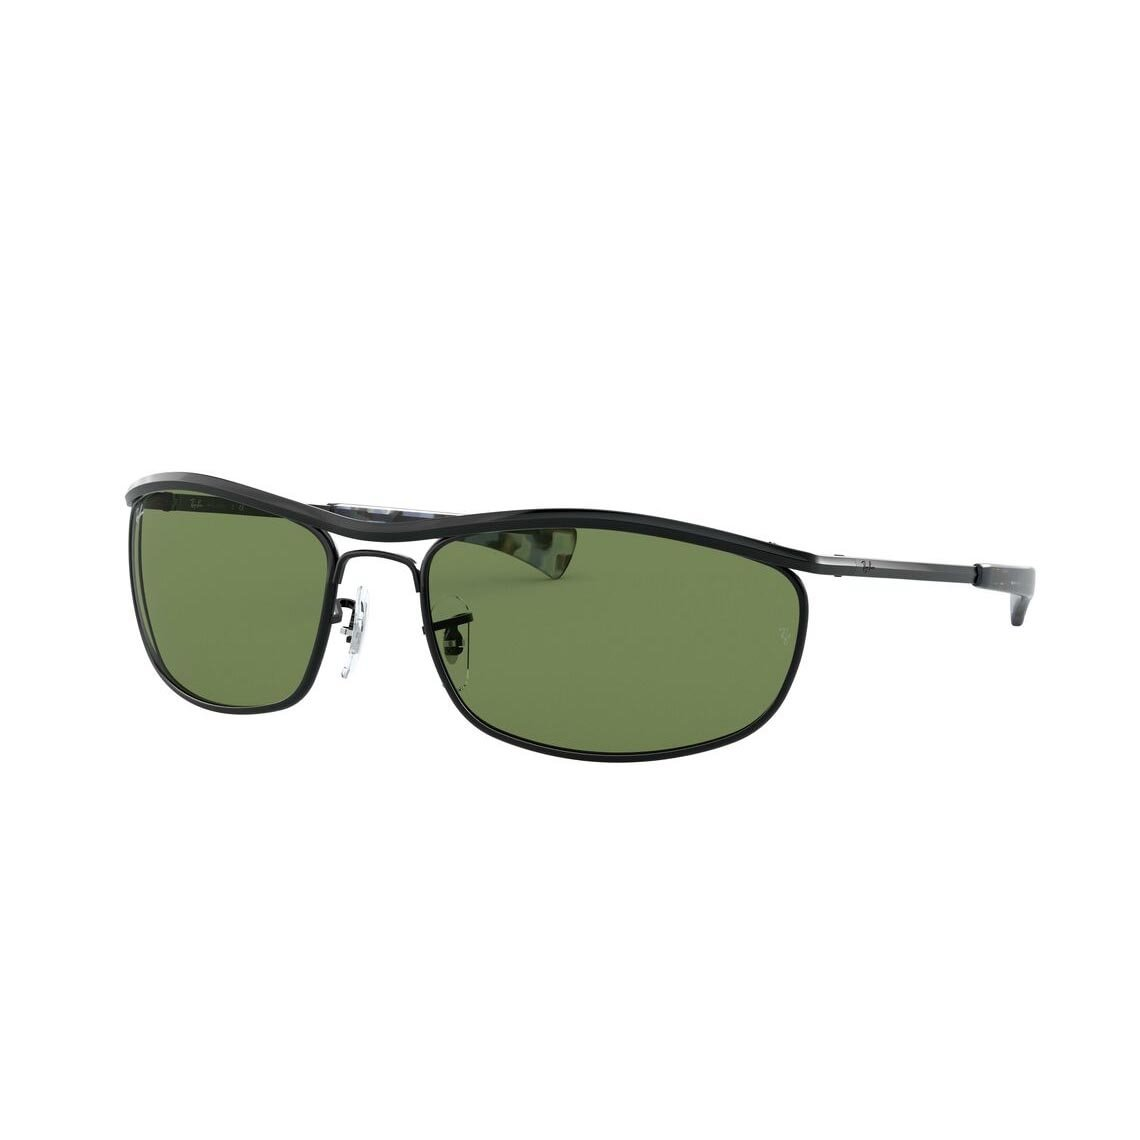 Ray-Ban Olympian I Deluxe RB3119M 918214 6218